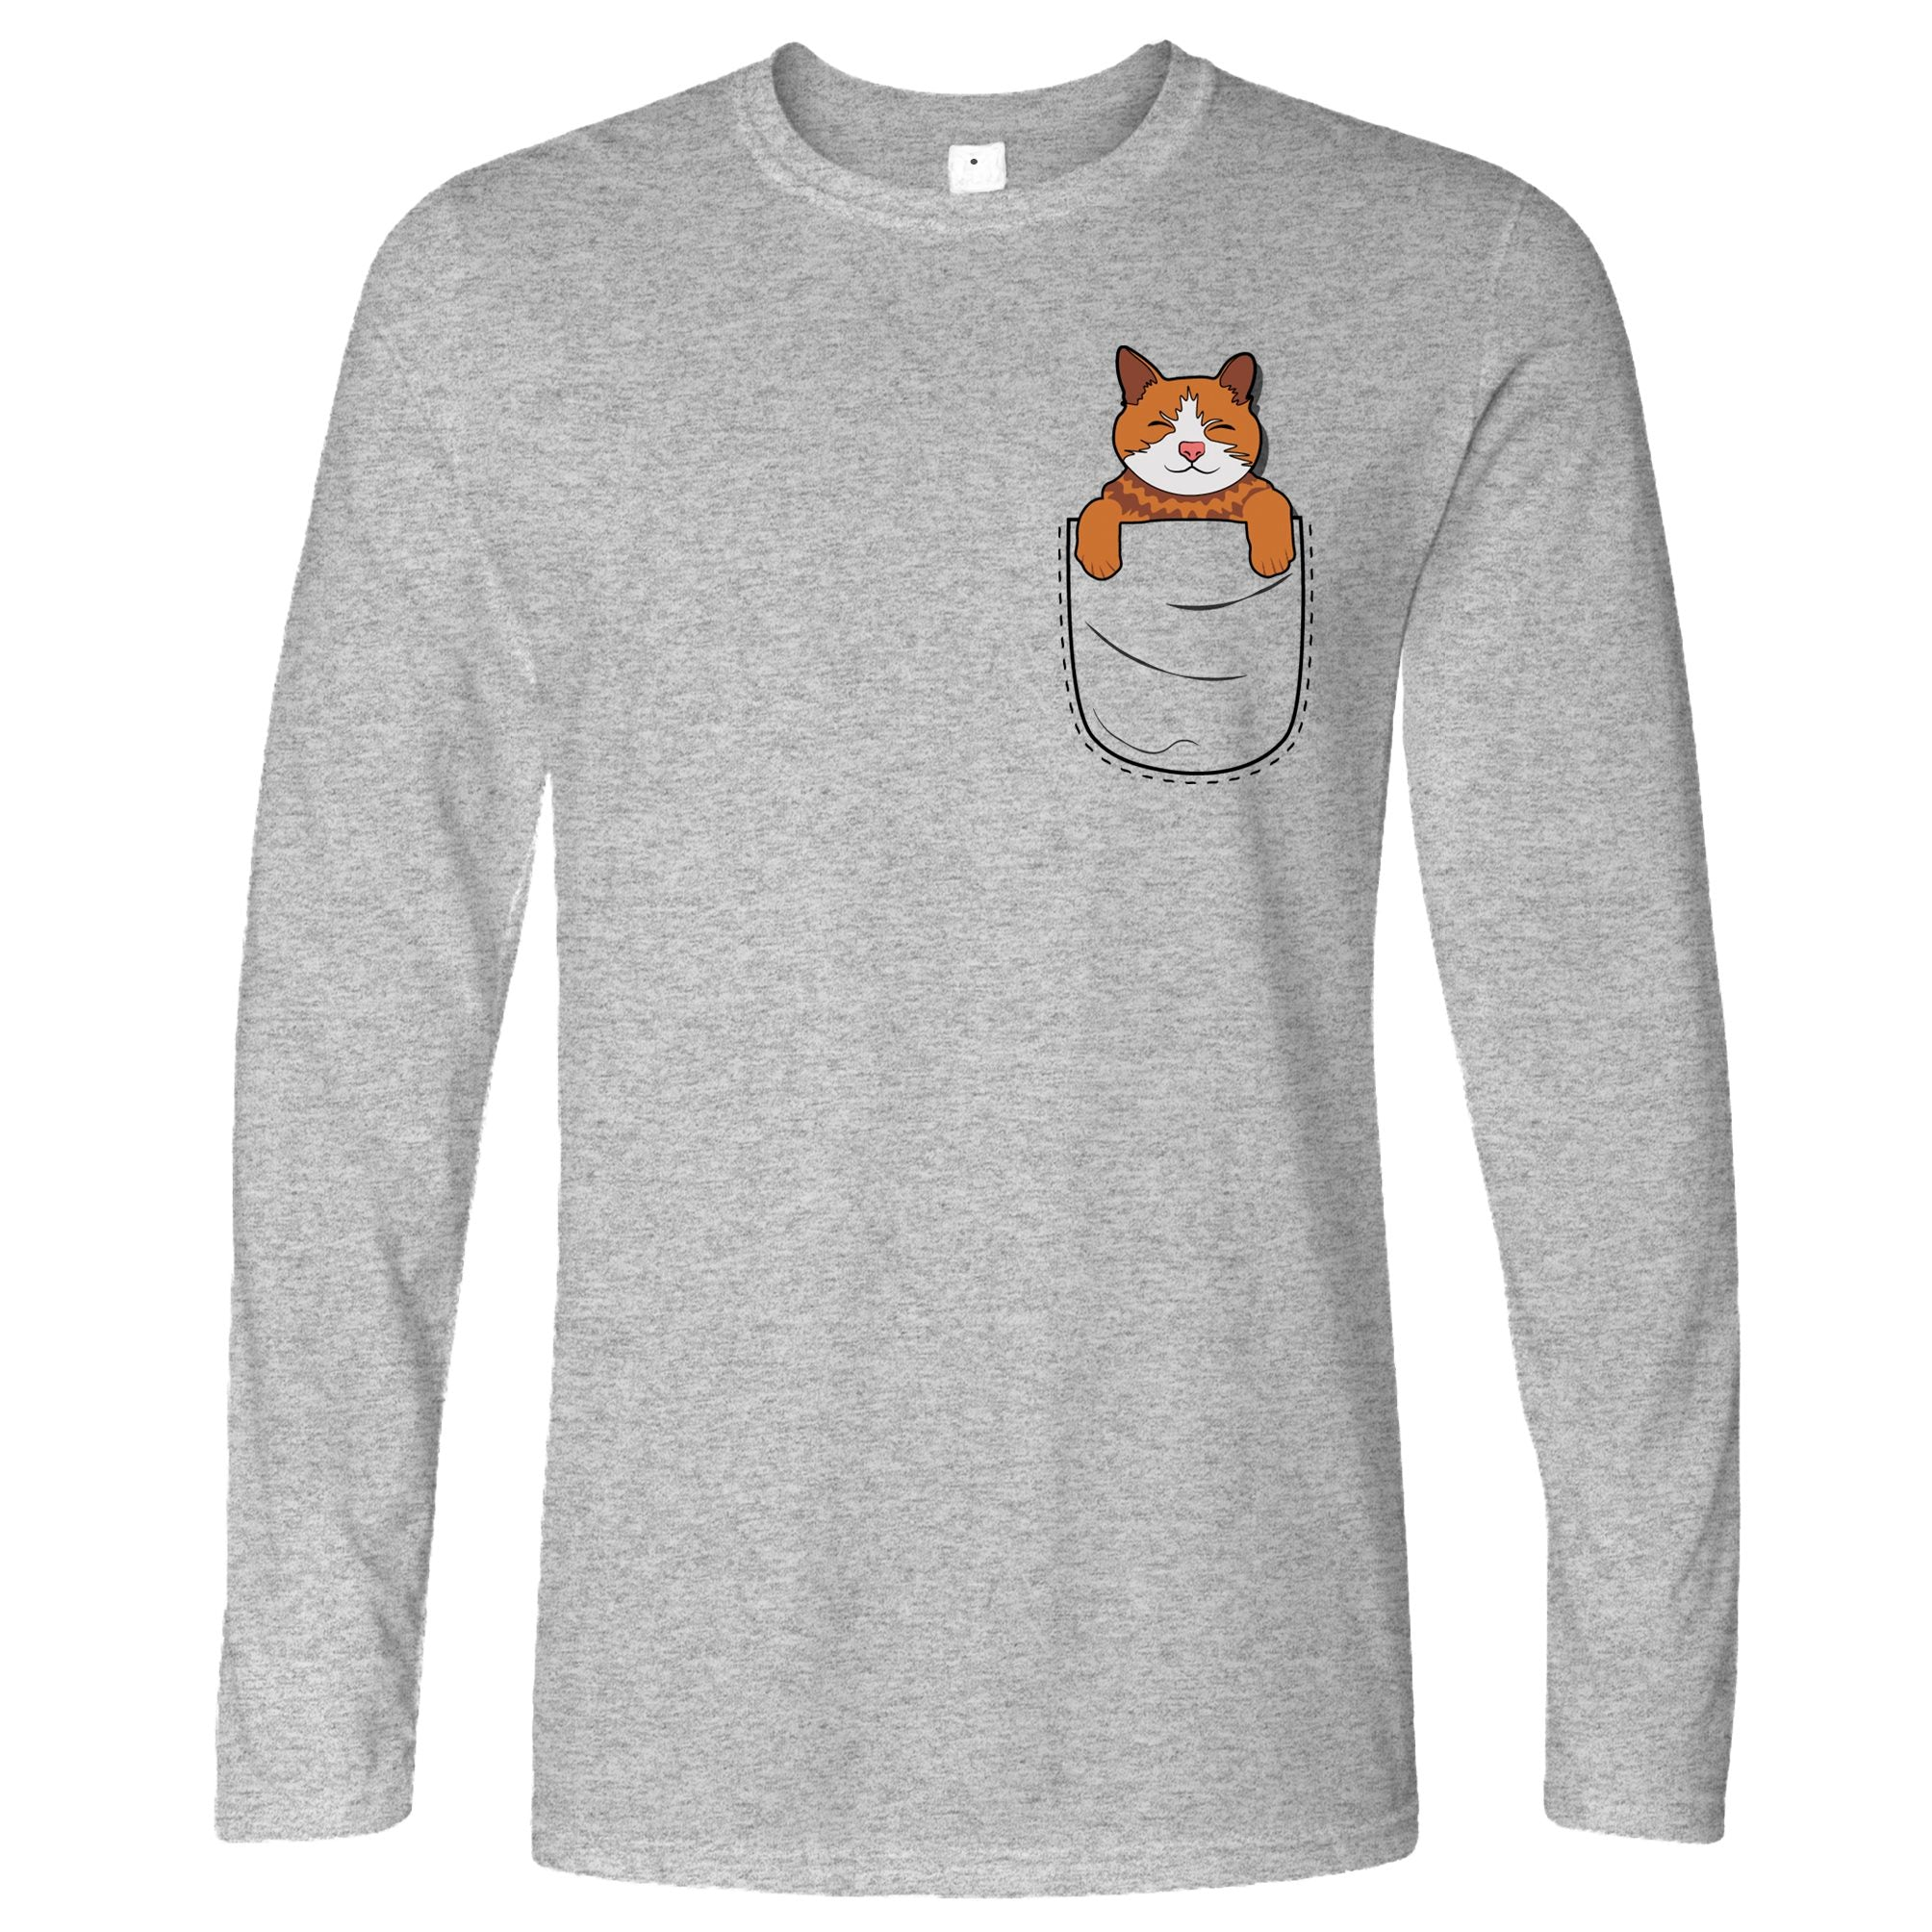 Funny Cute Cat Long Sleeve Kitten in Pocket T-Shirt